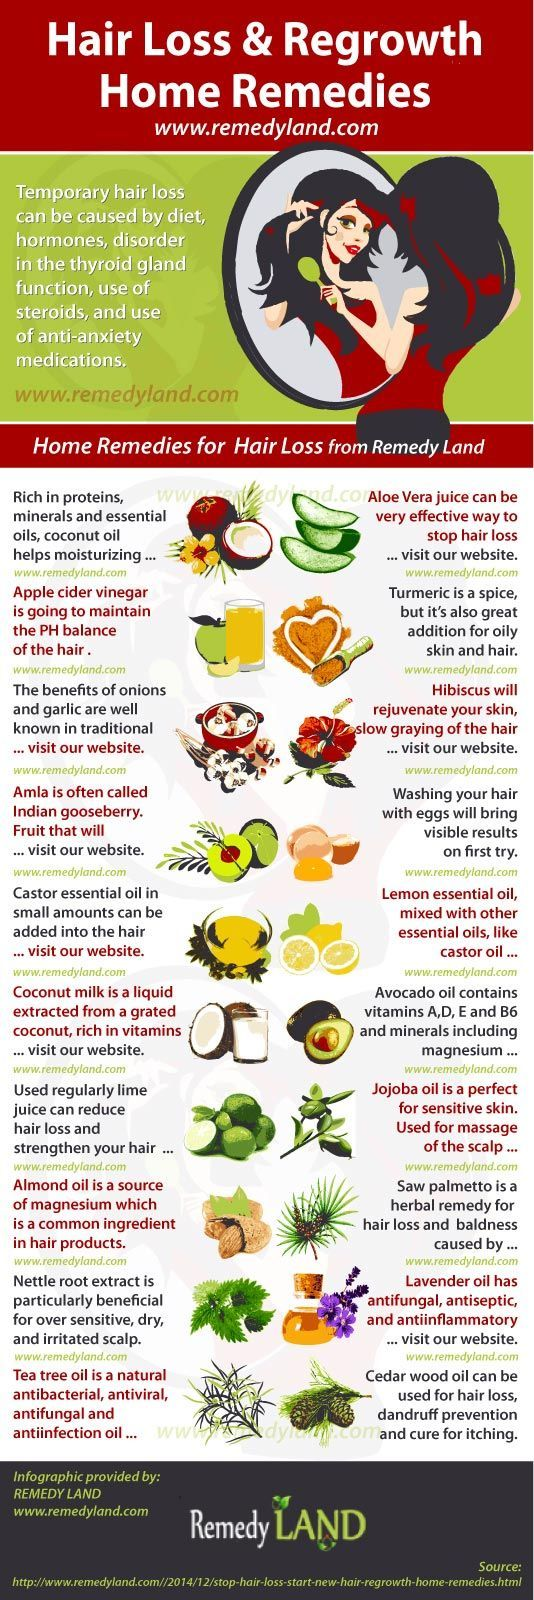 Home remedies as a rich and available source of natural hair care treatment, to stop hair loss and start regrowth of new hair.